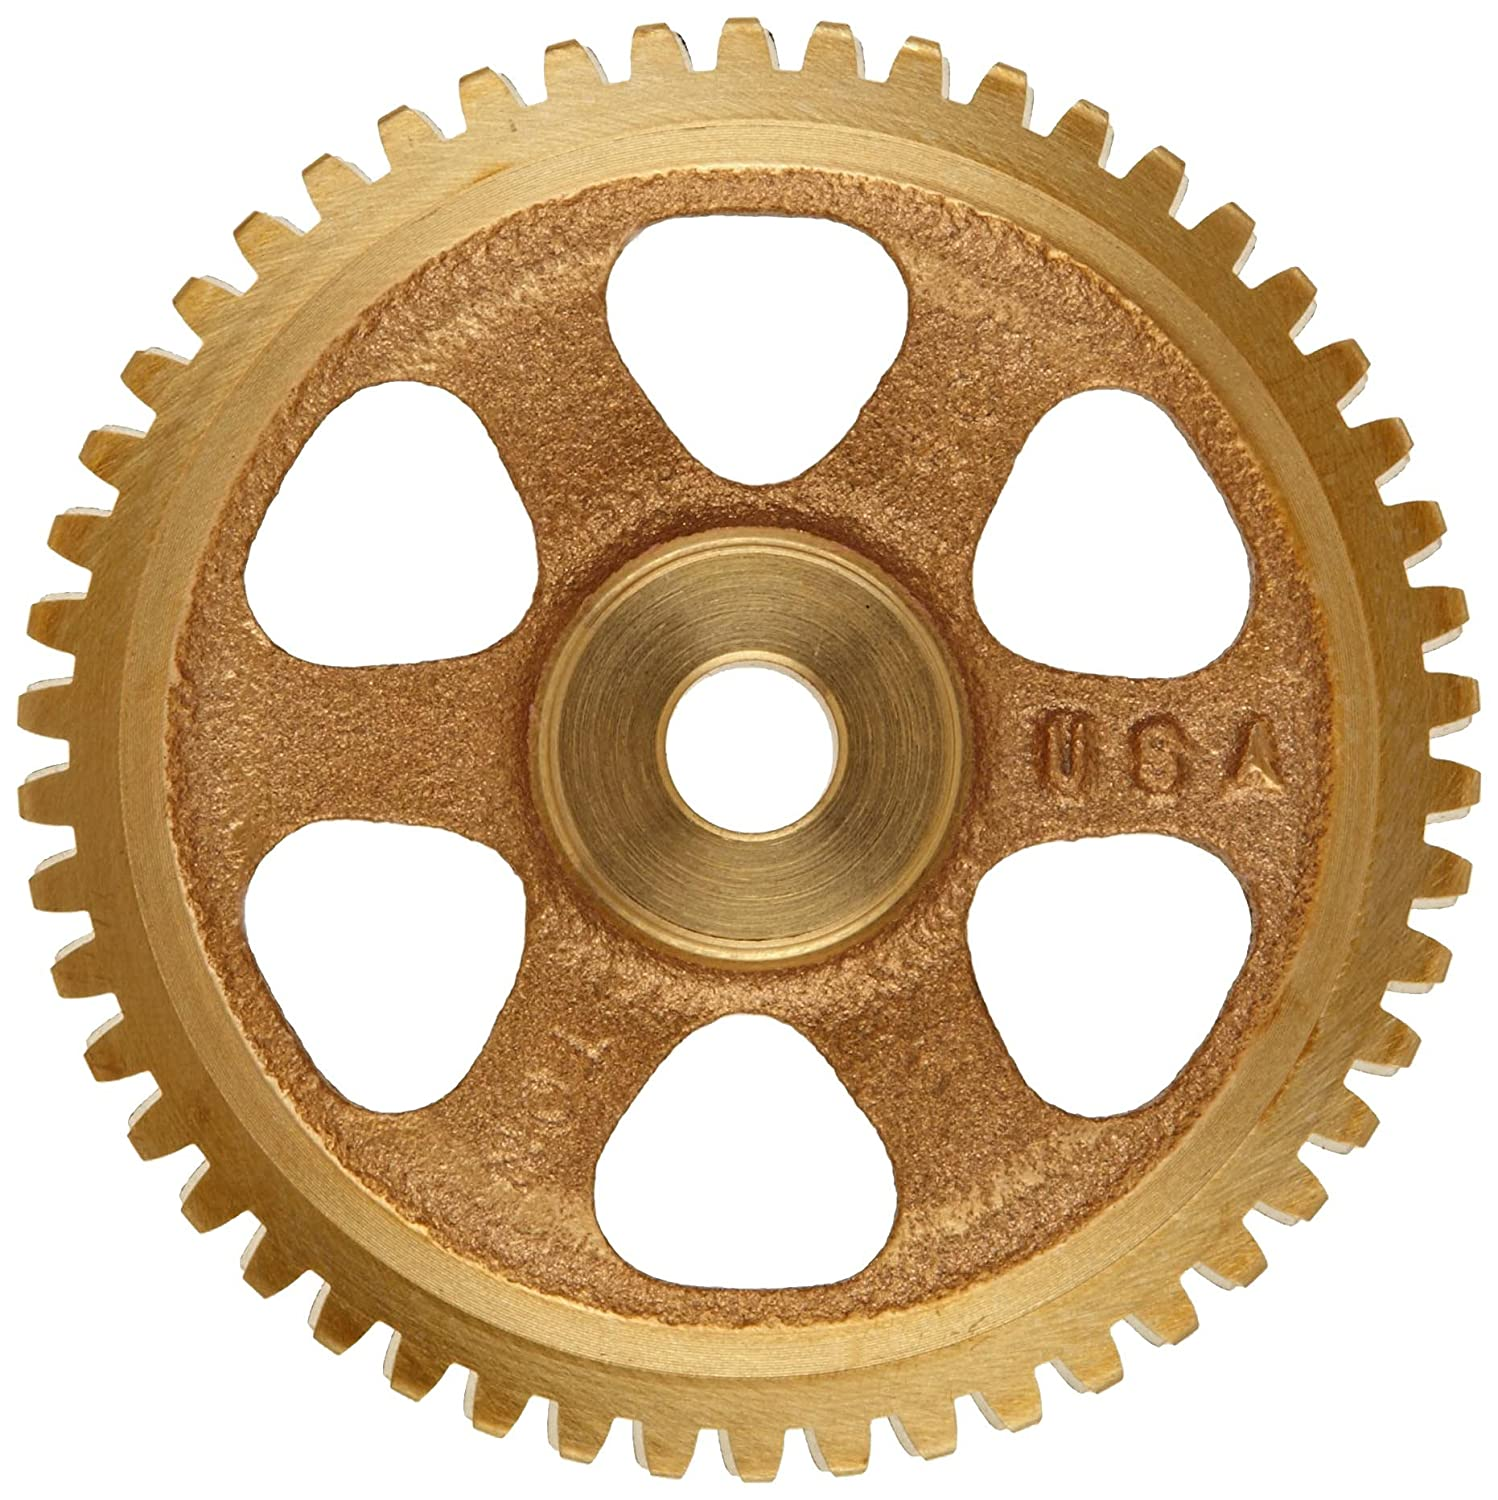 14.5 PA Pressure Angle RH 80 TEETH Spoke 0.375 Bore 80:1 Ratio Boston Gear G1046 Worm Gear